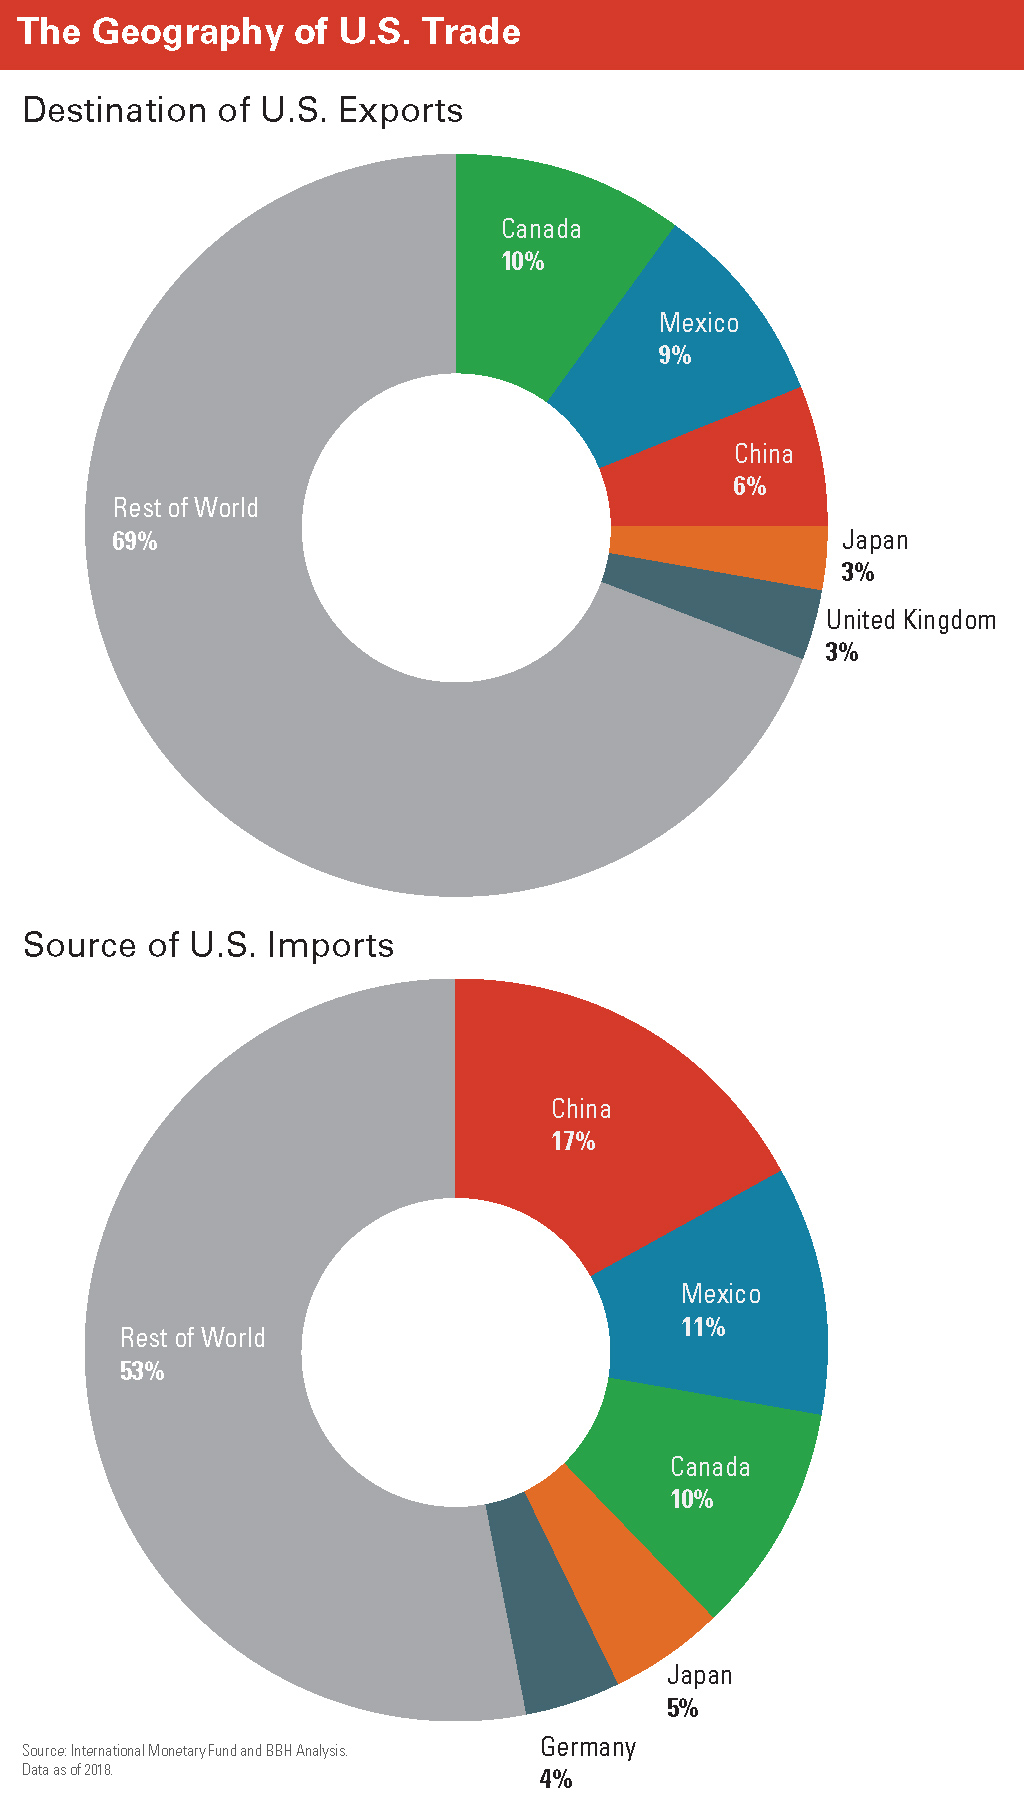 Geography of U.S. Trade pie charts